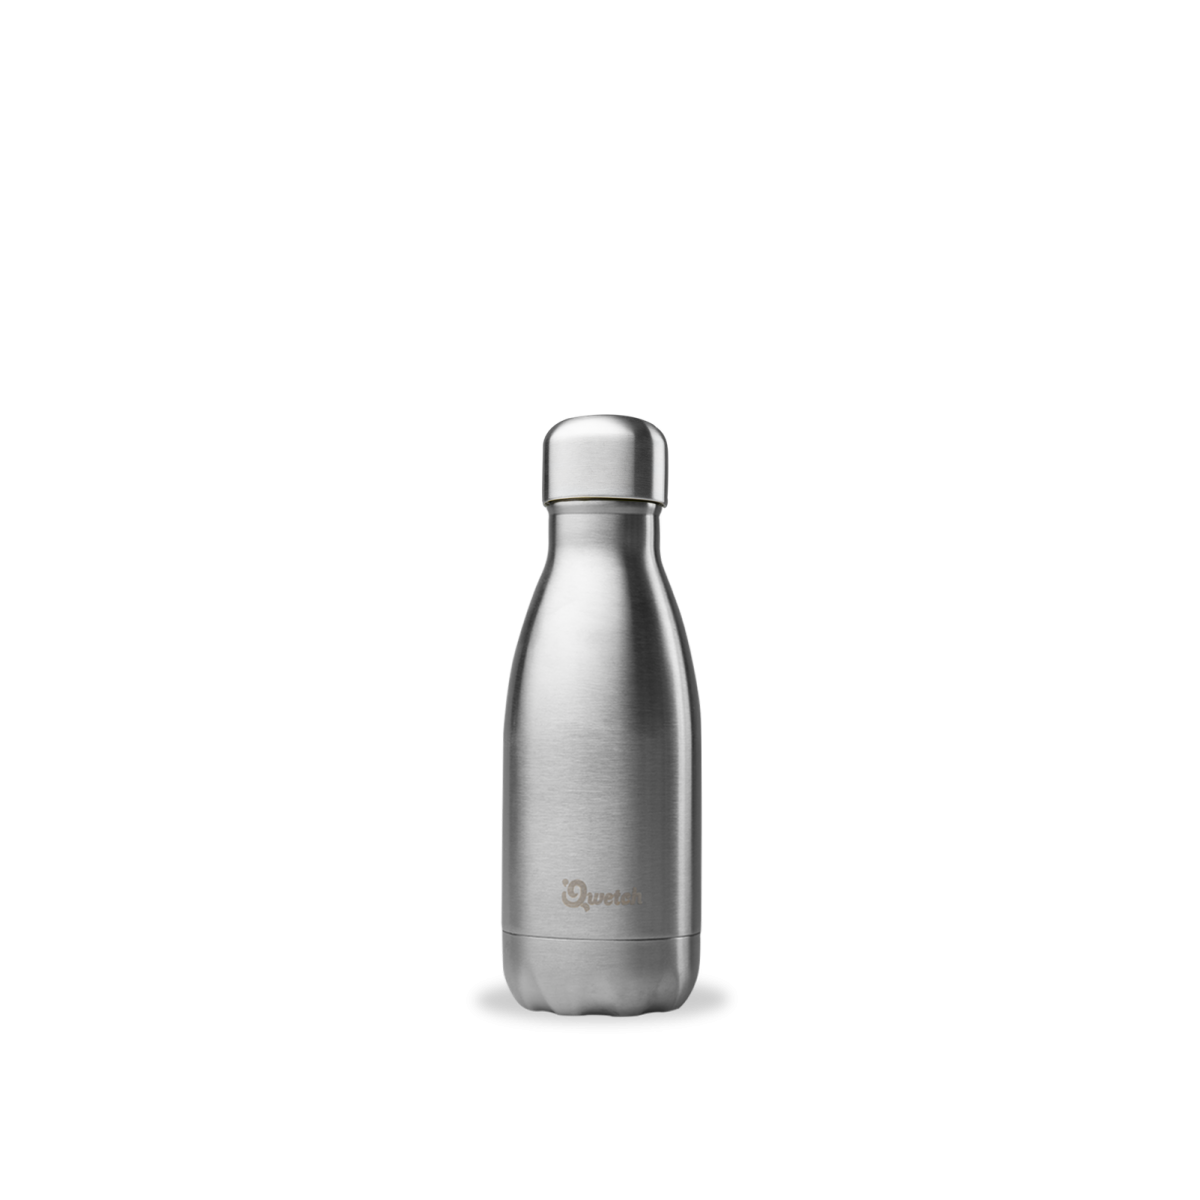 Qwetch Bouteille Isotherme 260ml